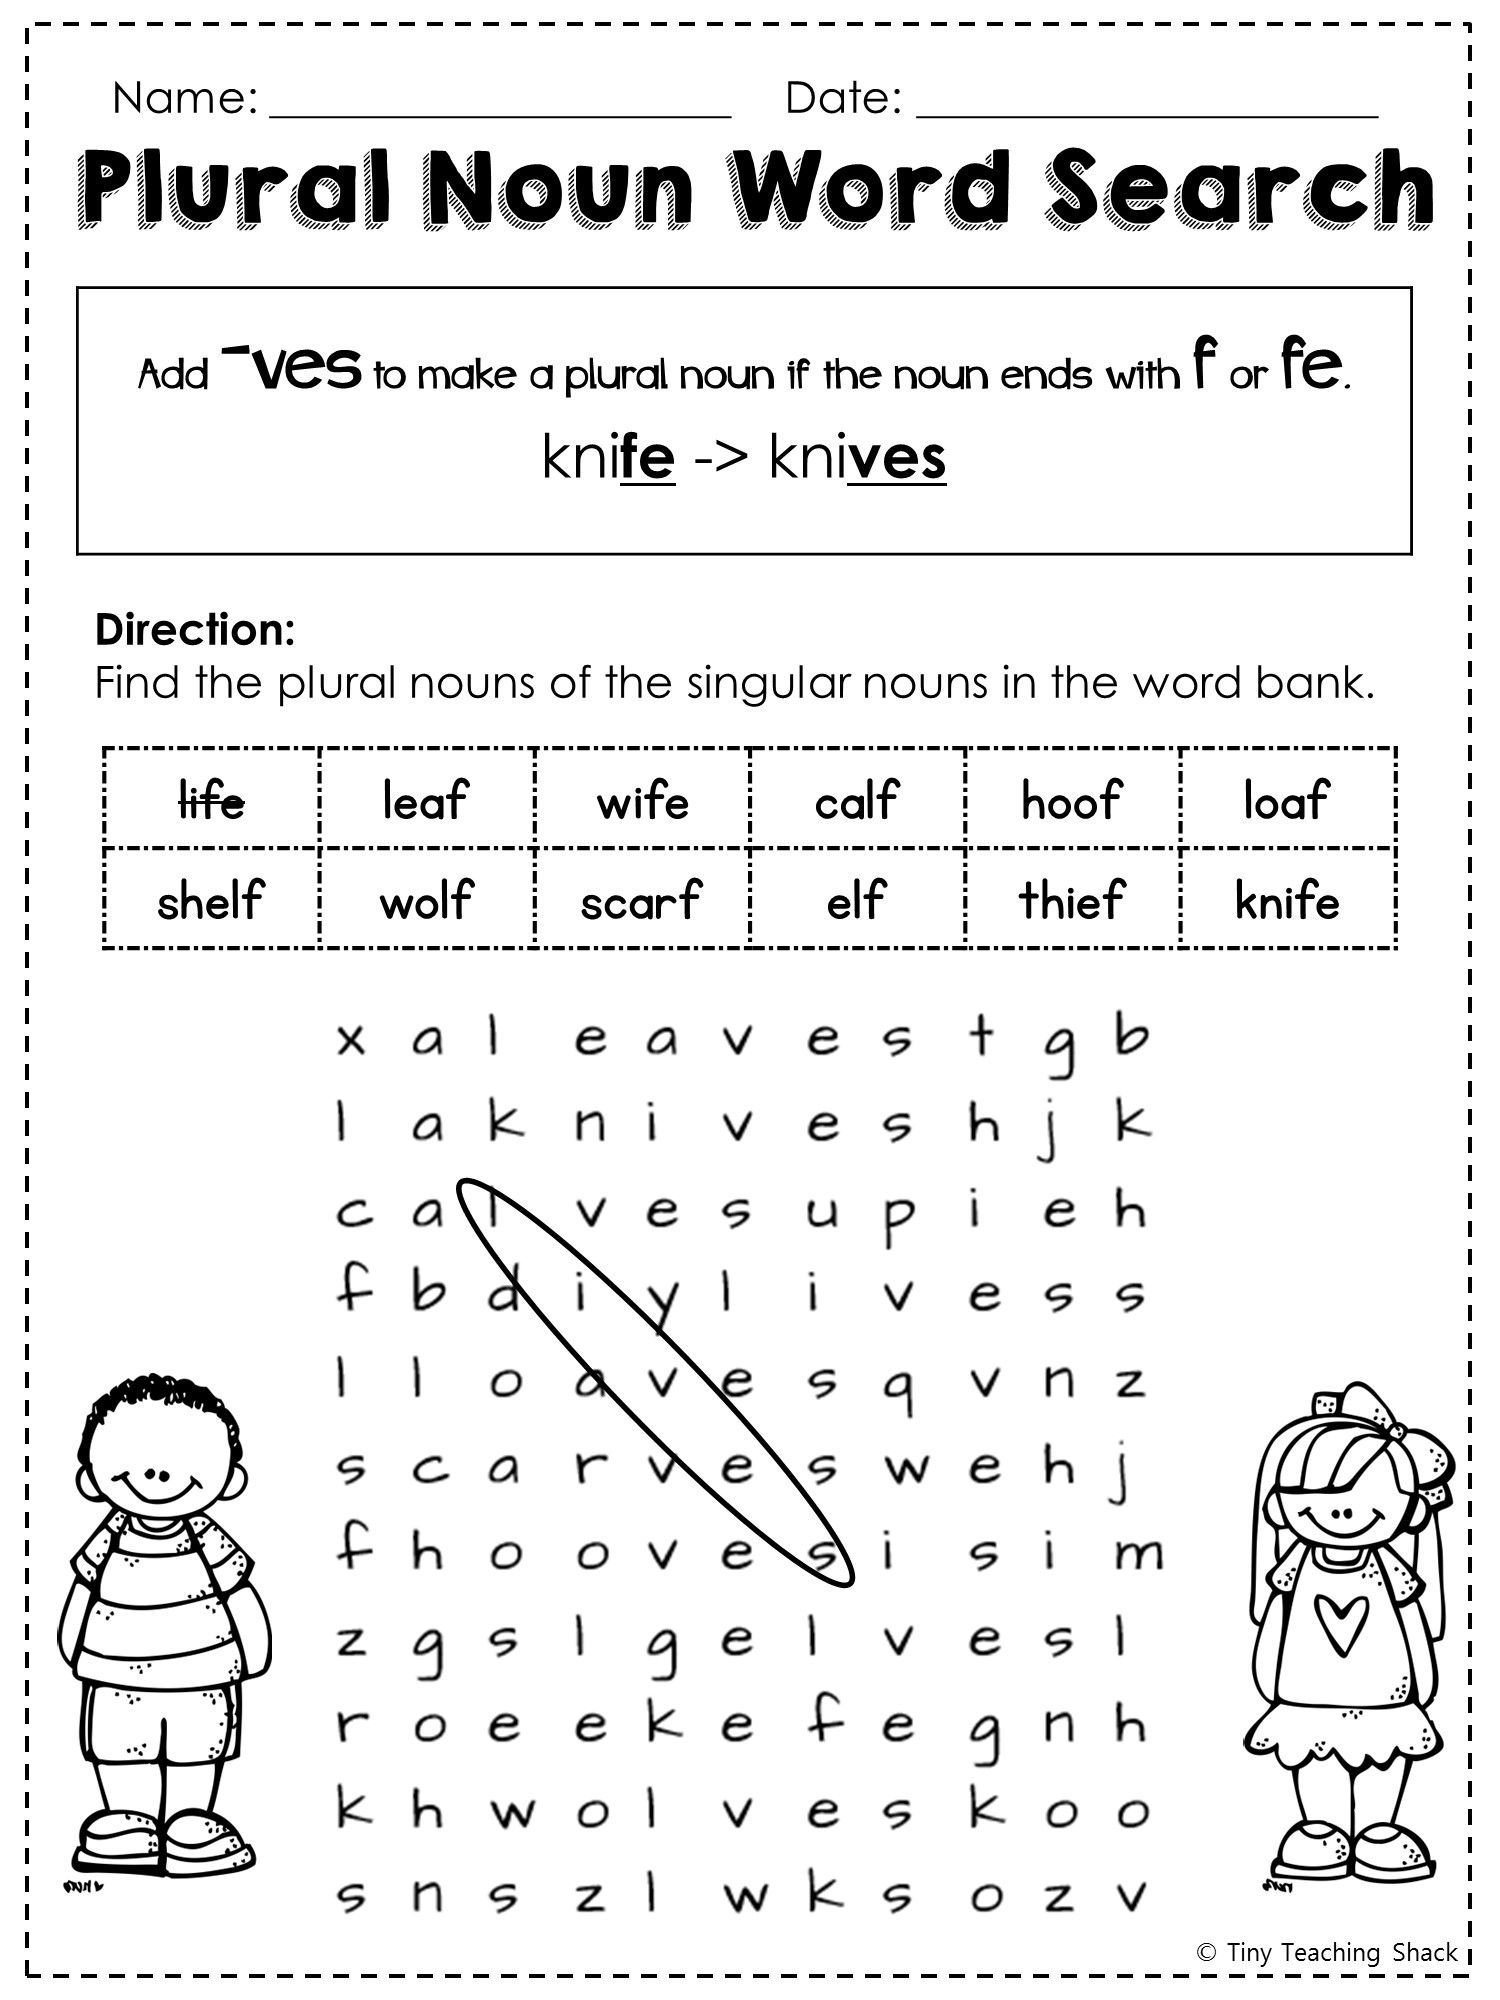 Free Irregular Plural Noun Word Search